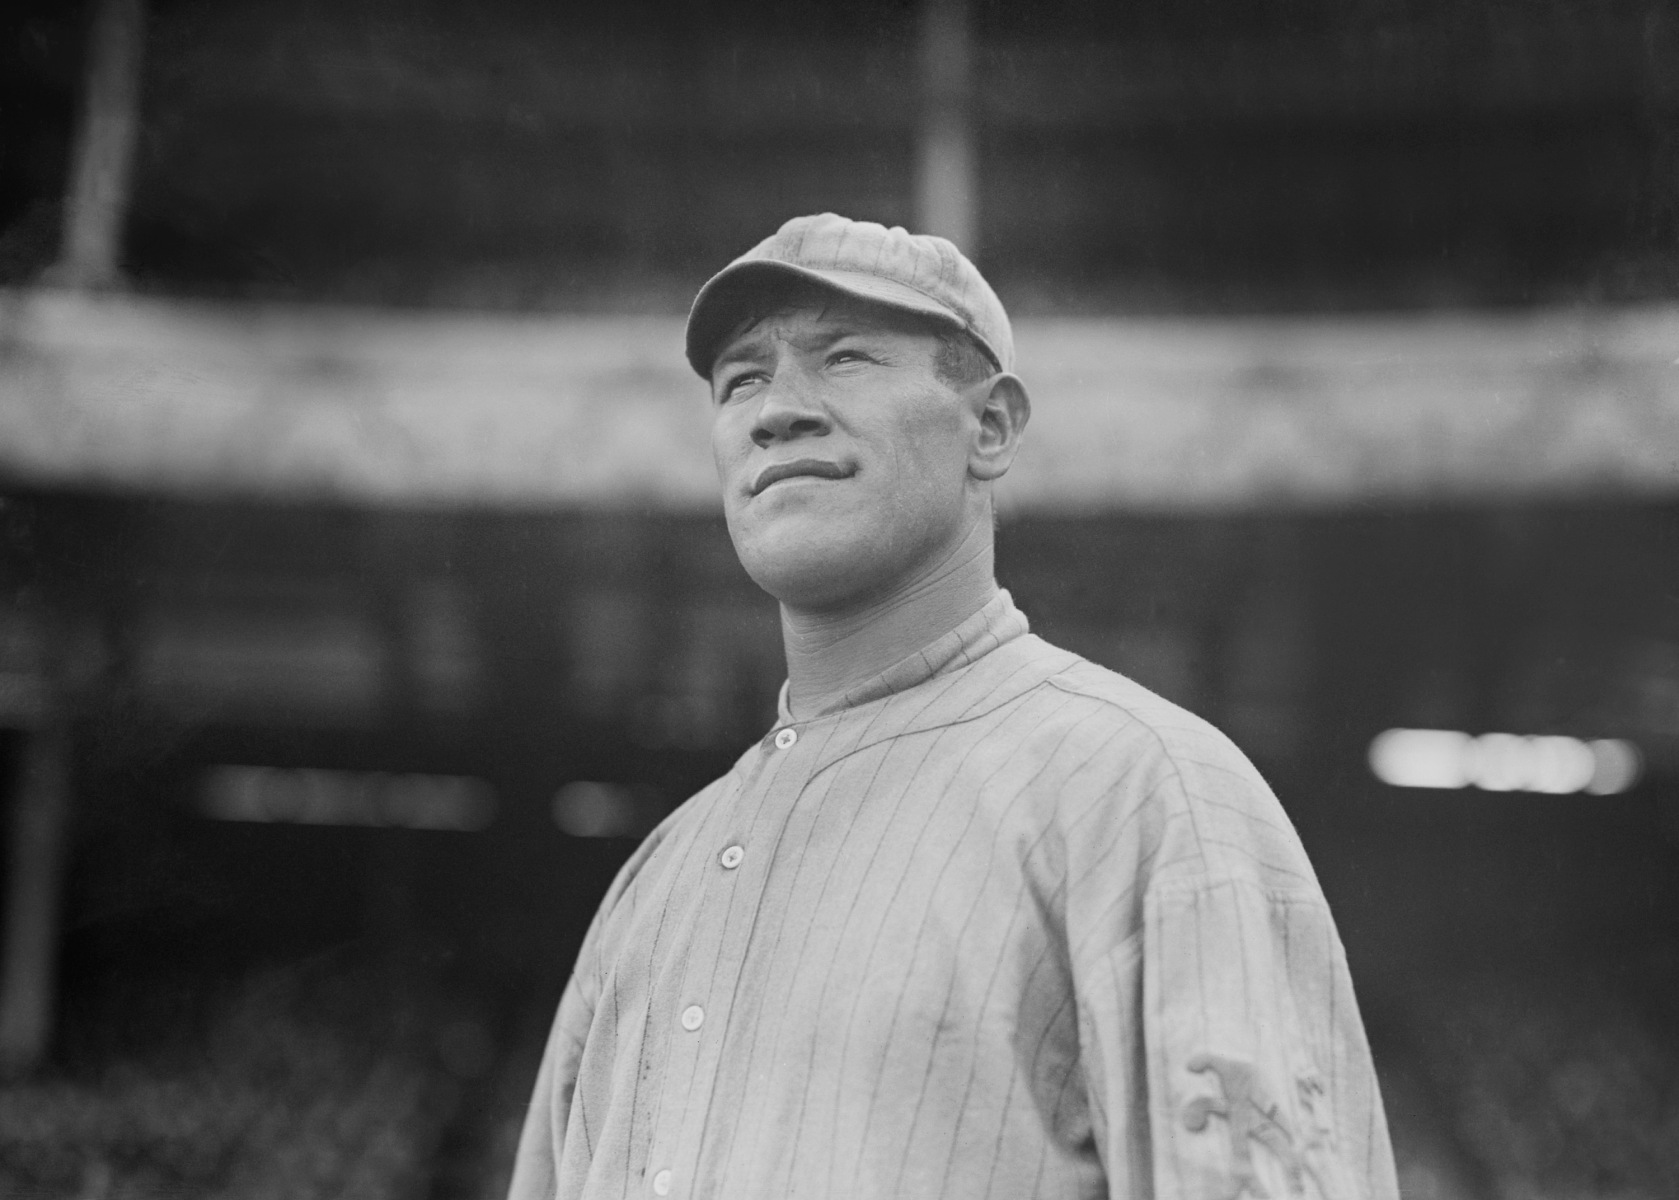 Jim Thorpe, Major League Baseball Player, two-time gold medalist, and Football Hall of Famer, Portrait, New York Giants, New York City, New York, USA, Bain News Service, 1913. (Universal History Archive/UIG via Getty Images)